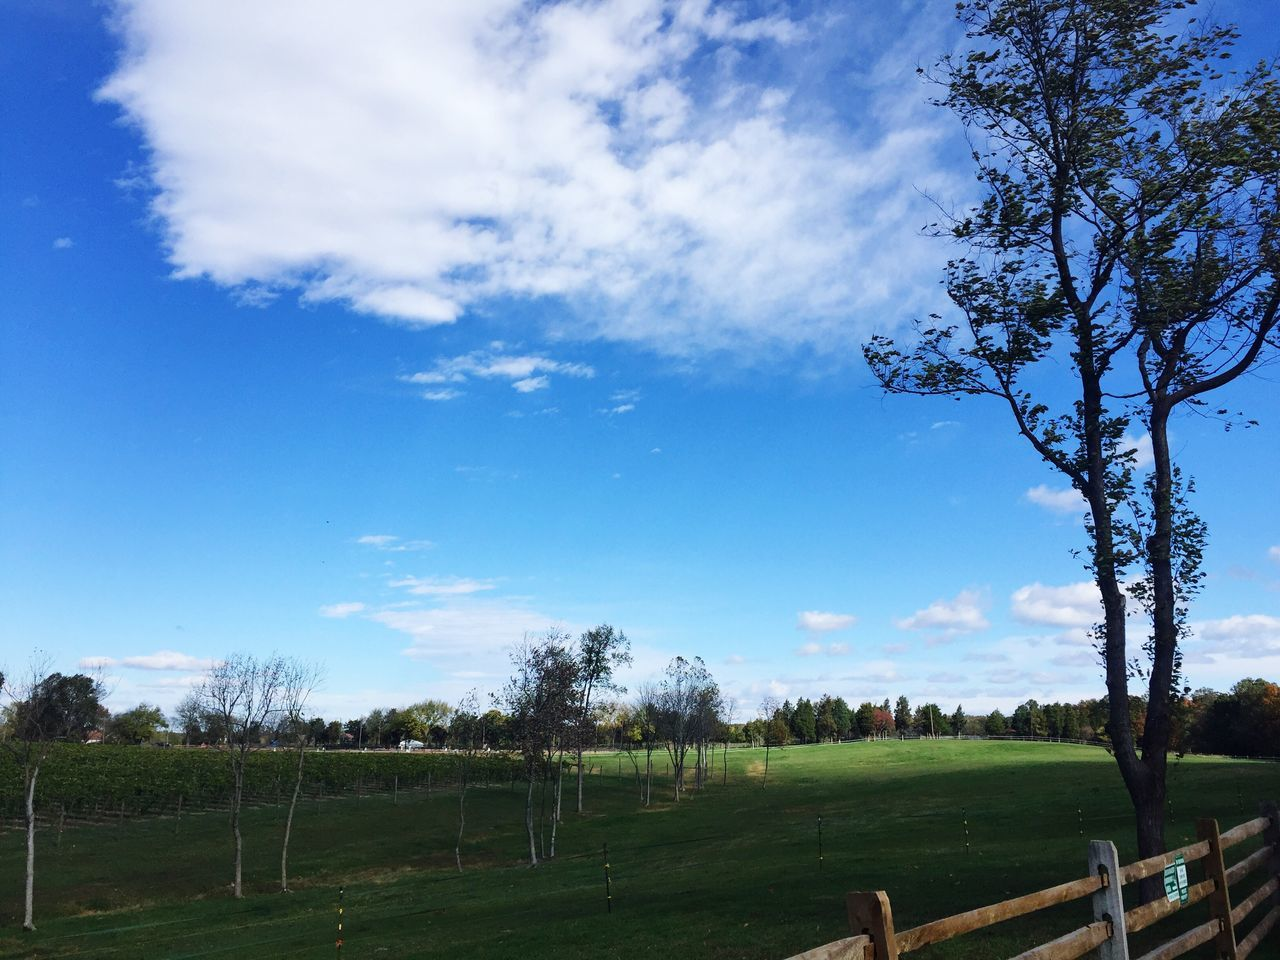 tree, sky, nature, field, landscape, rural scene, cloud - sky, agriculture, scenics, beauty in nature, tranquility, tranquil scene, no people, day, grass, outdoors, pasture, blue, growth, animal themes